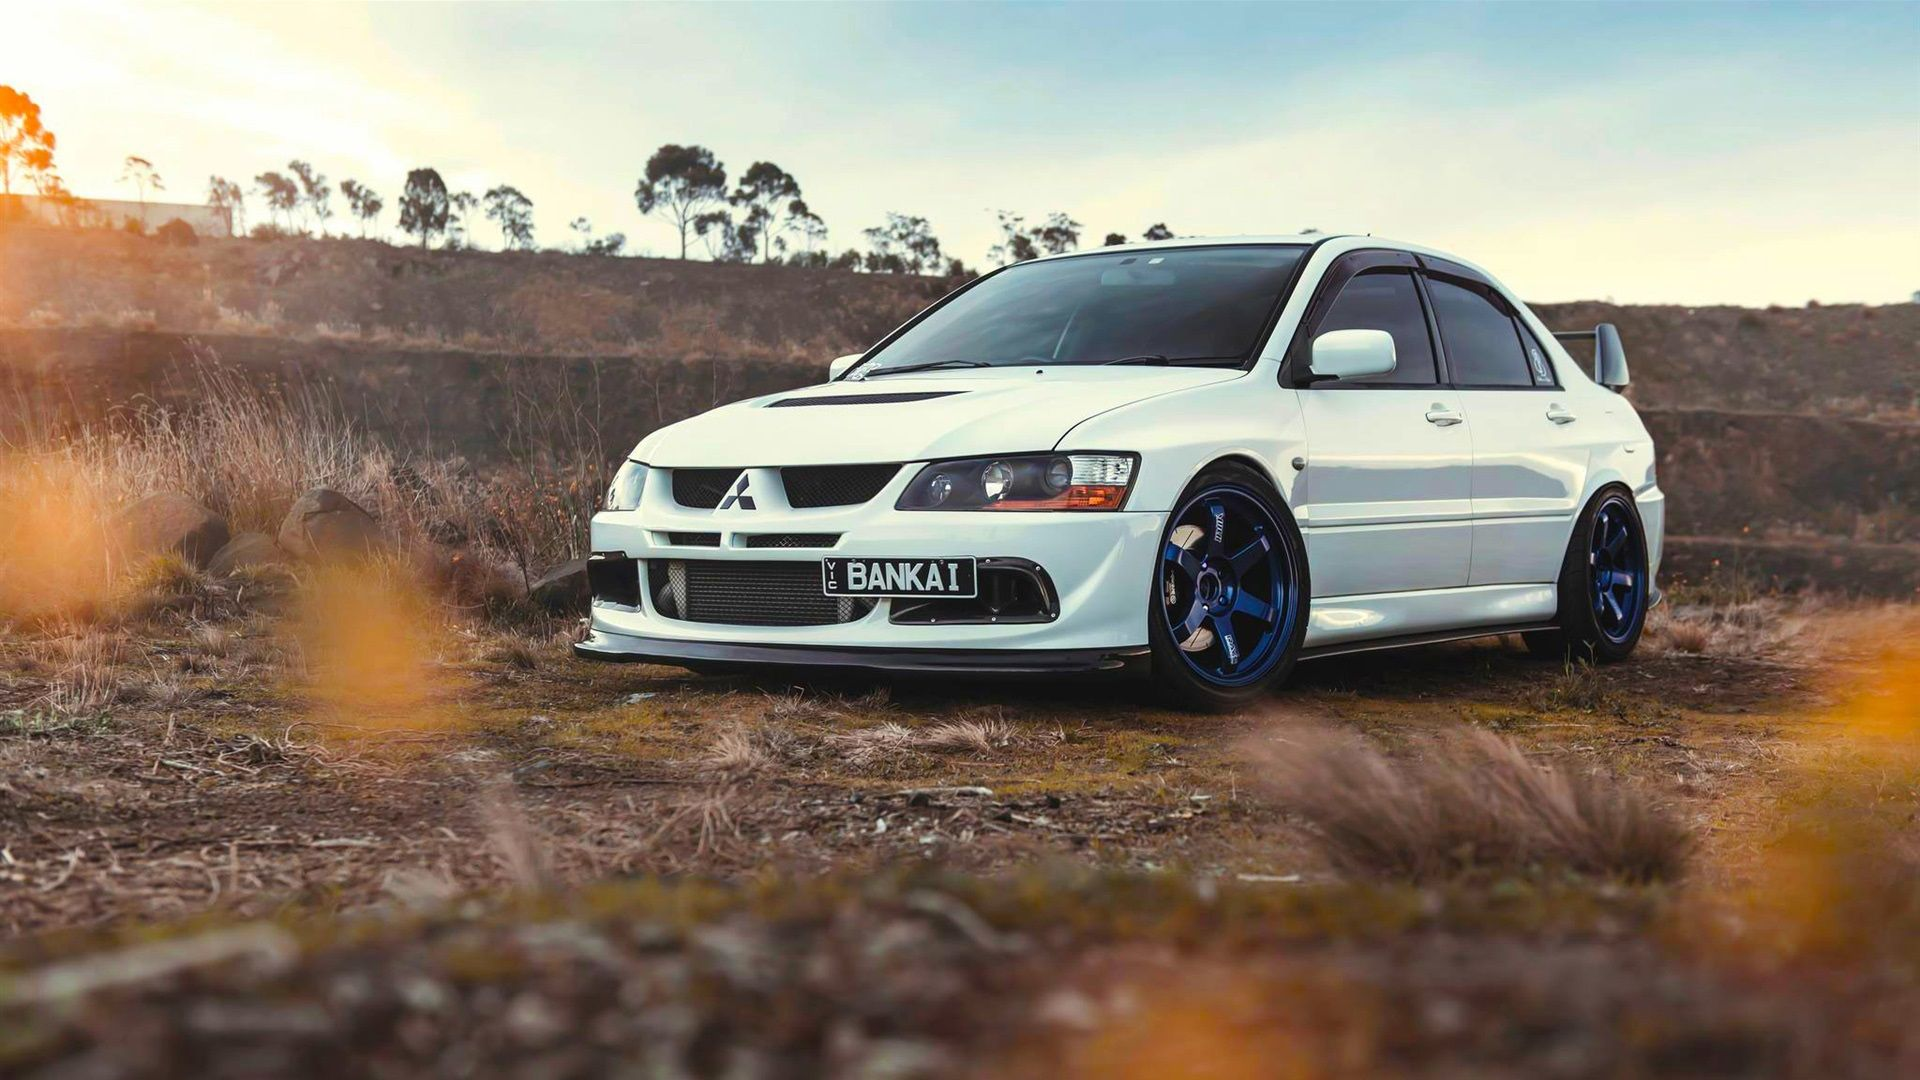 Mitsubishi Lancer Evolution 9 White Car 4k Android Wallpaper 4k Cars